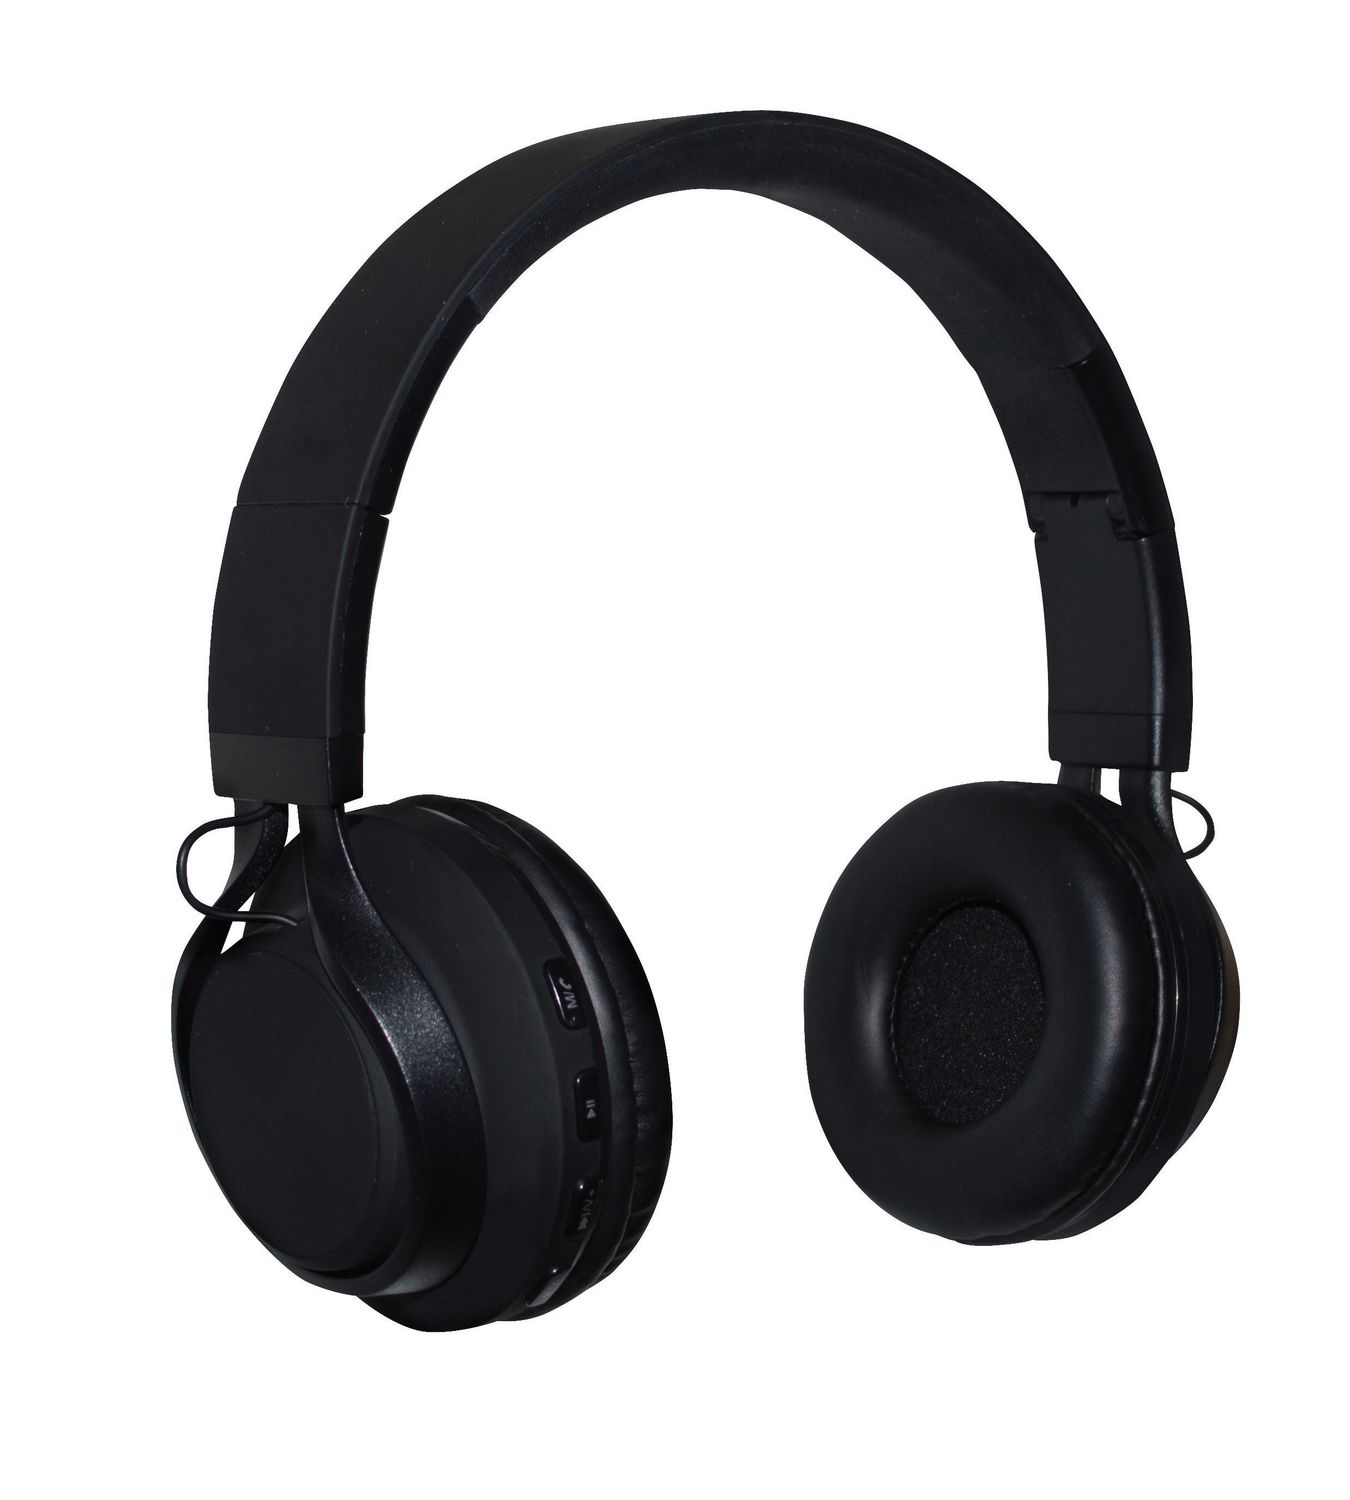 2e11dc0d7dd NUPOWER ROKS Wireless Headphones for Android and iPhone Black - image 1 of  2 zoomed image